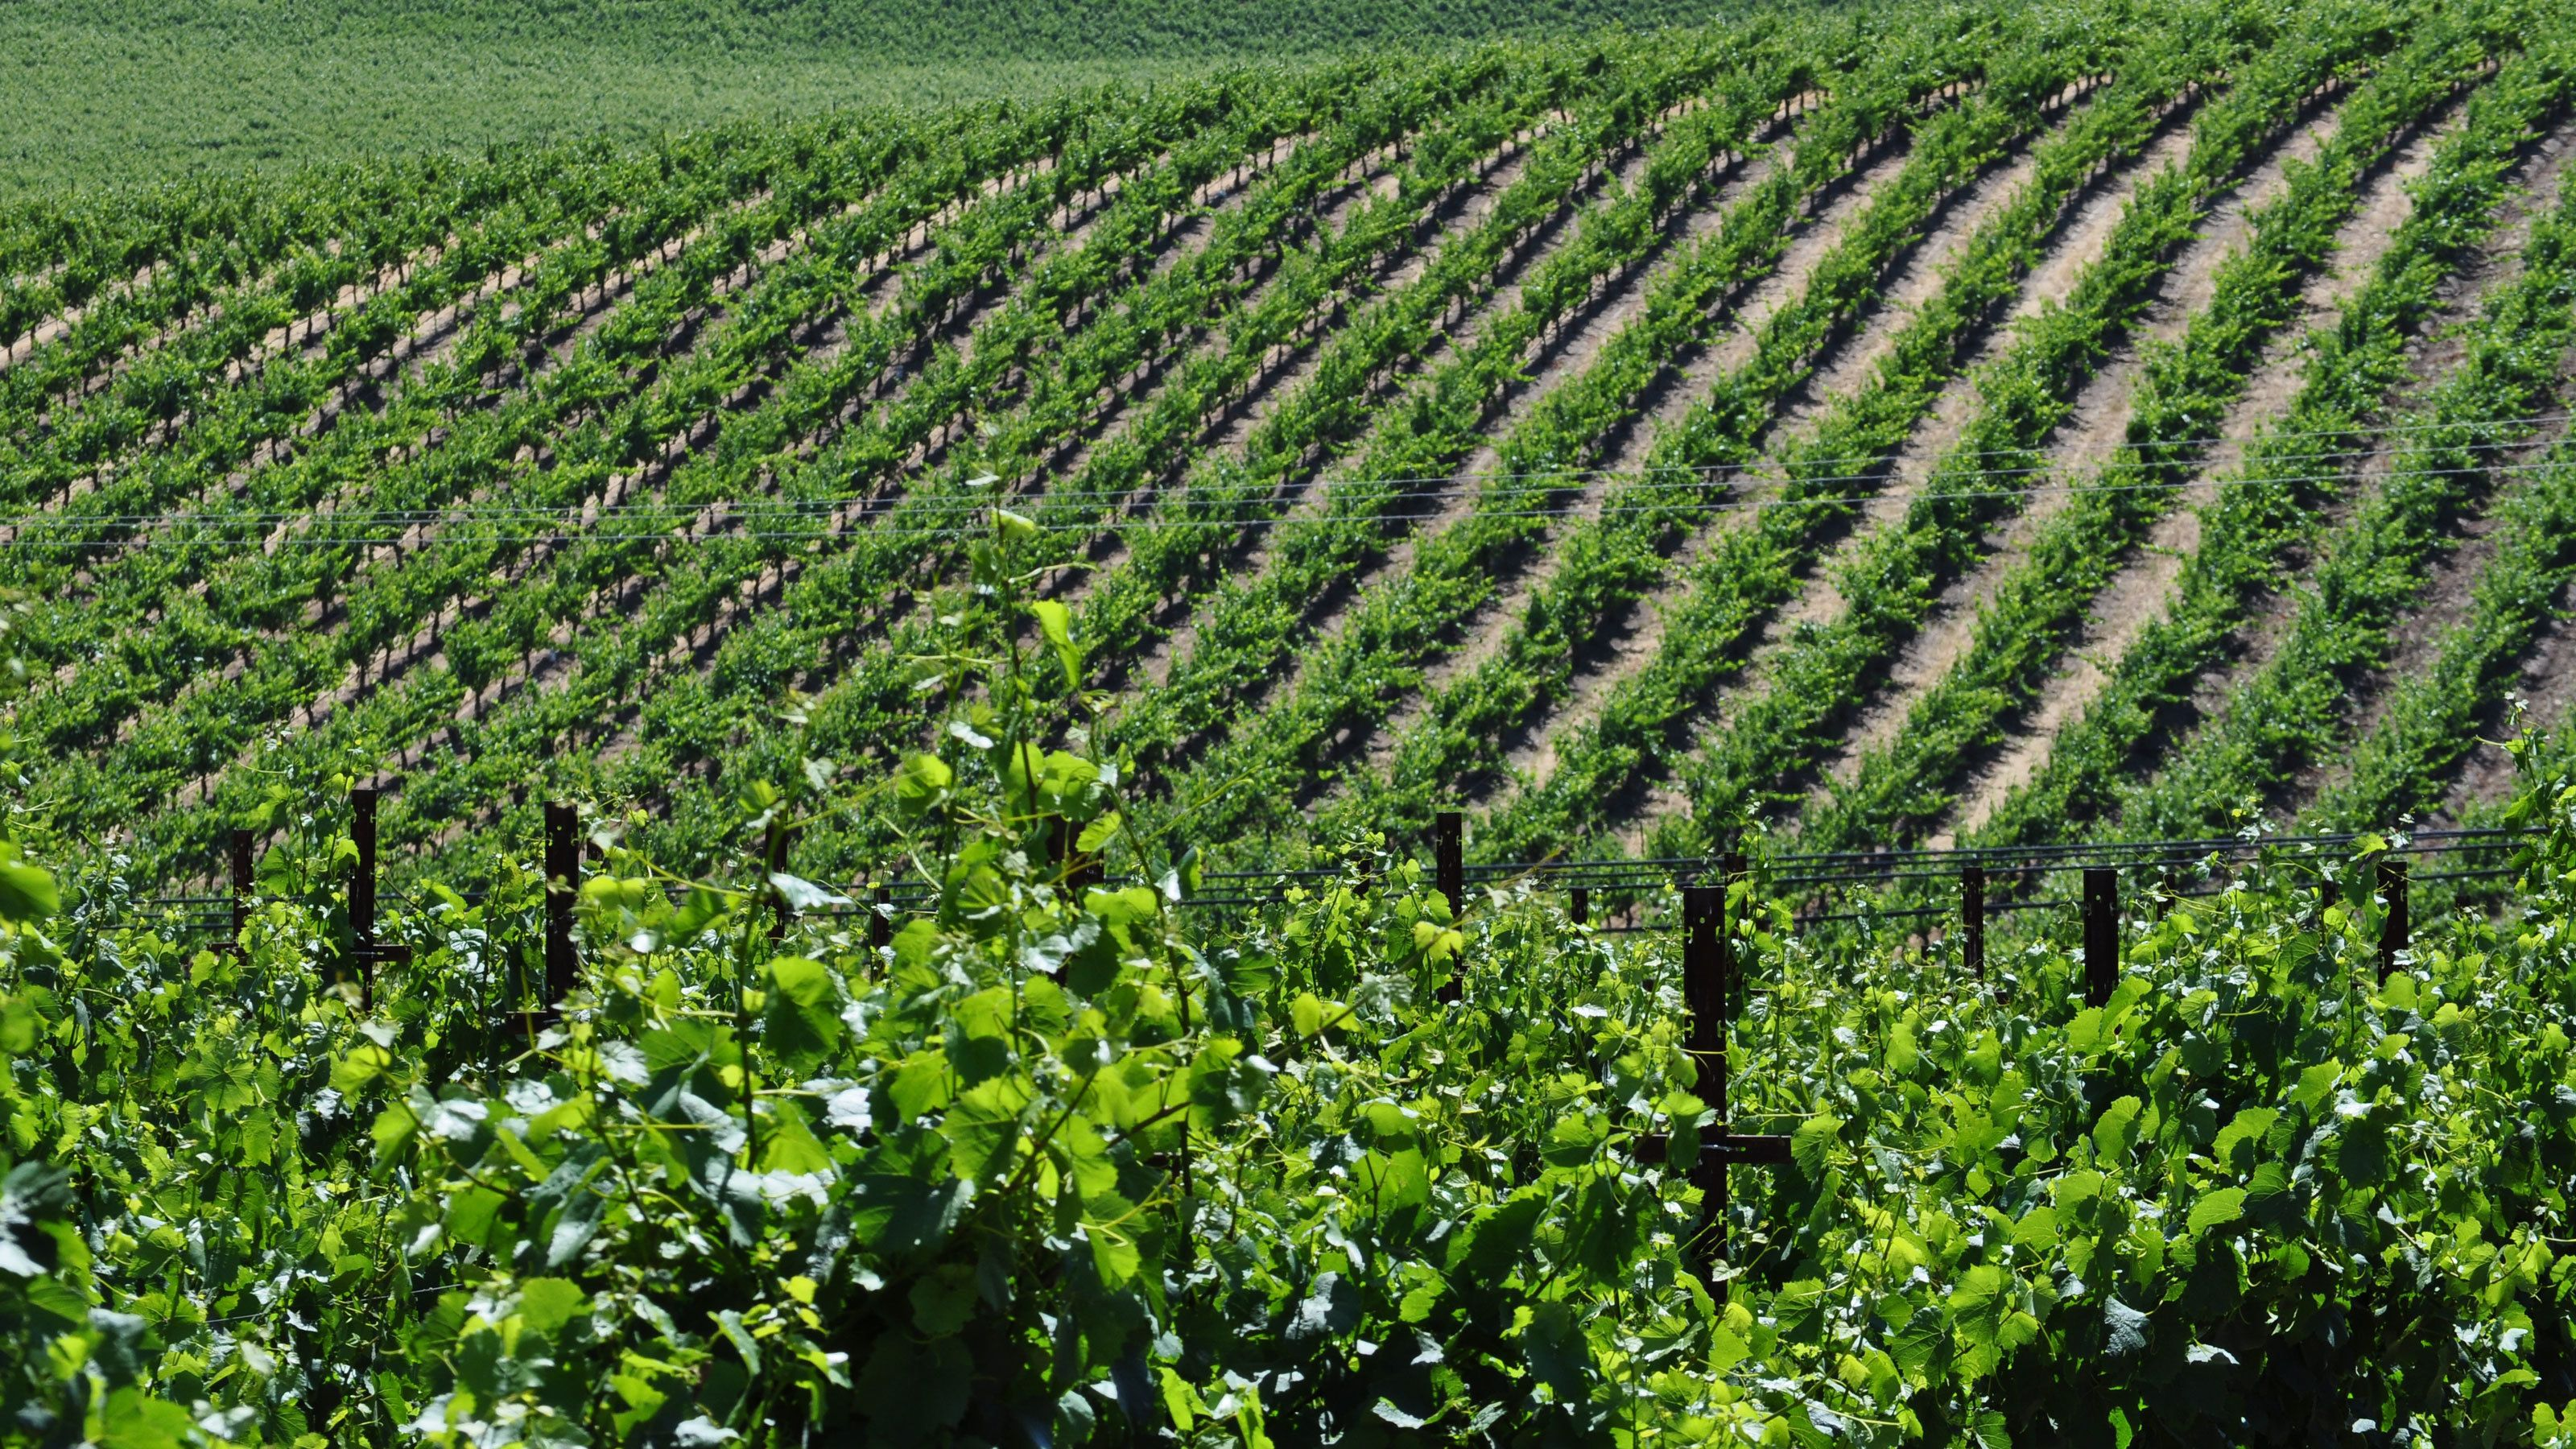 Rows of vines at a vineyard in Napa Valley